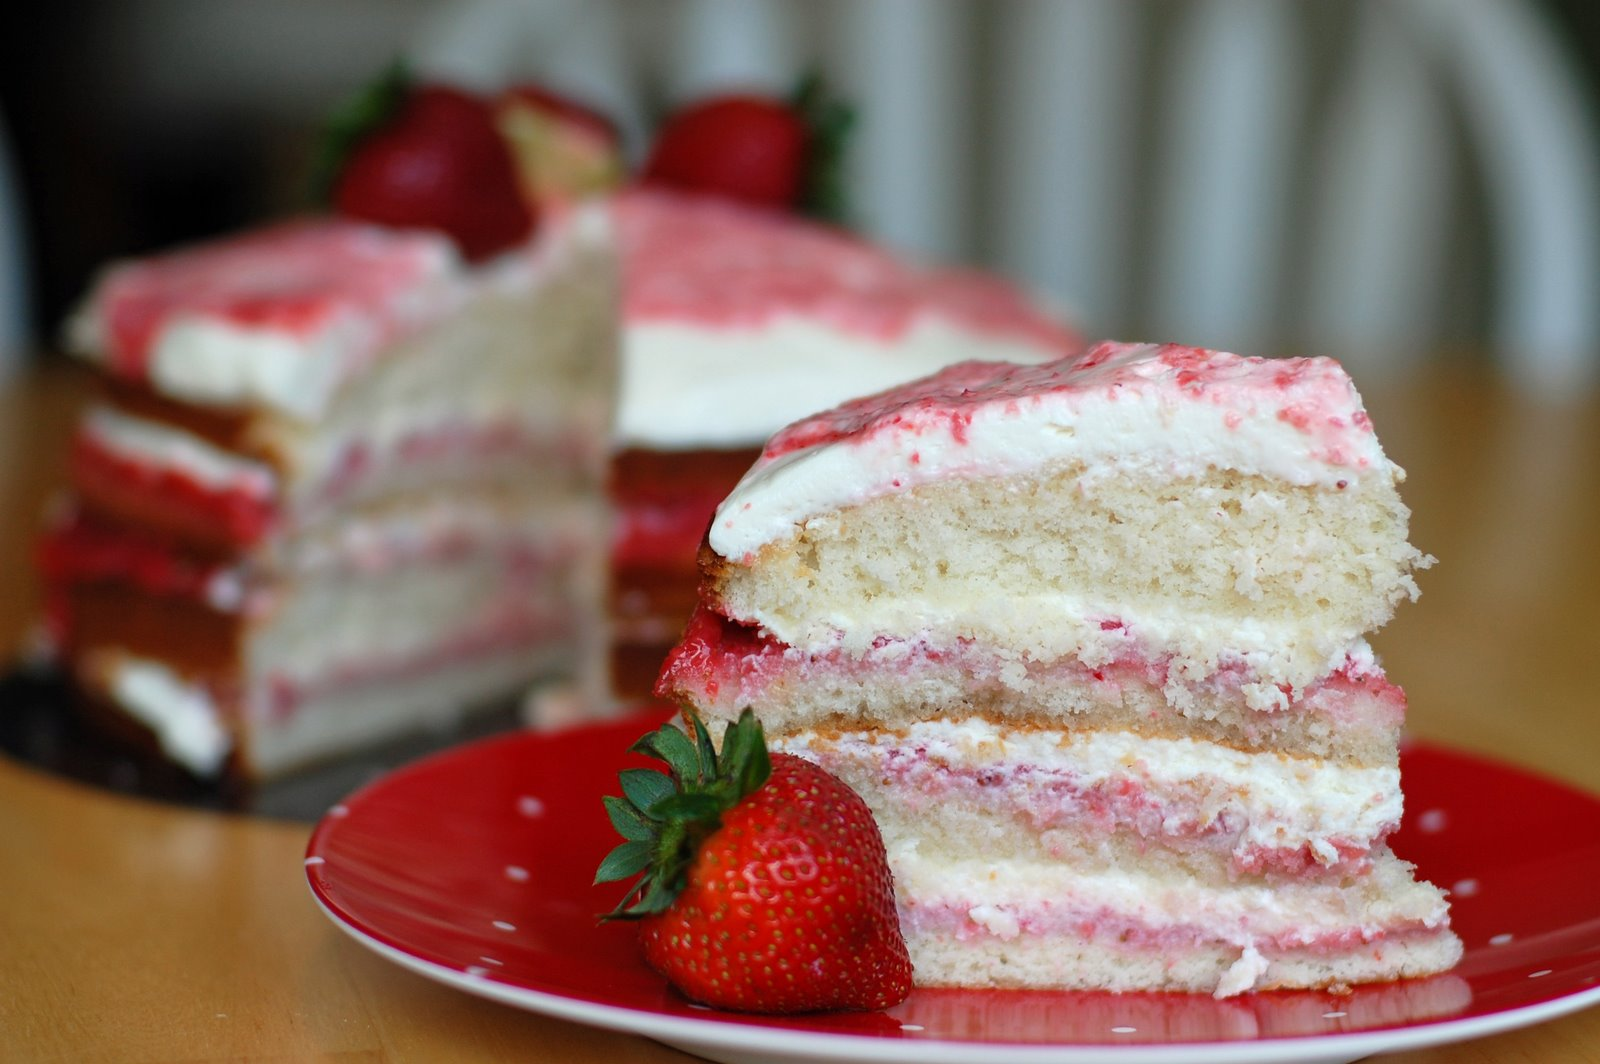 Barefoot and Baking: Strawberry-Lime Cream Cake